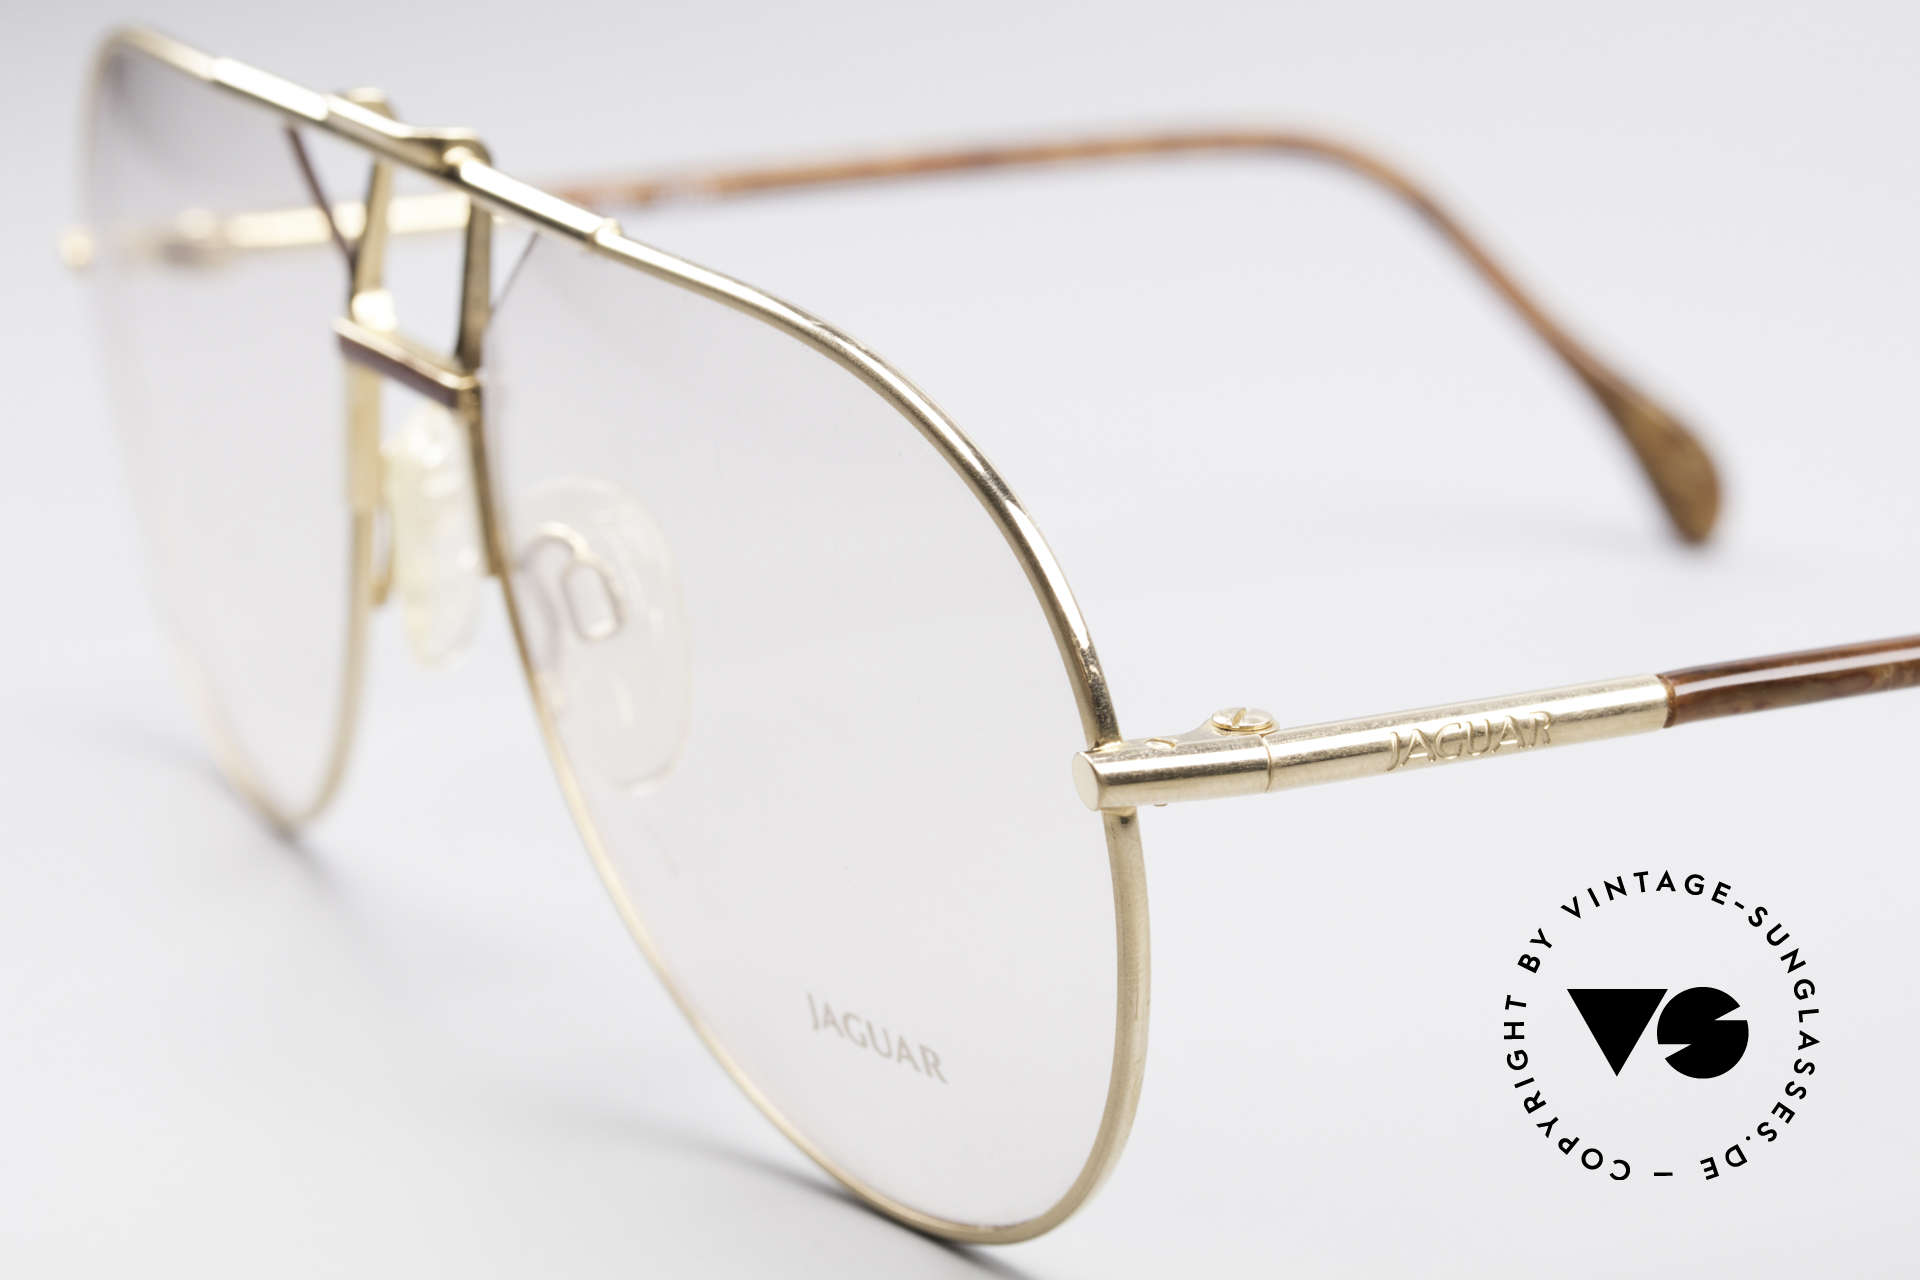 Jaguar 407 80's Luxury Accessory, unworn (like all our vintage men's eyeglasses), Made for Men